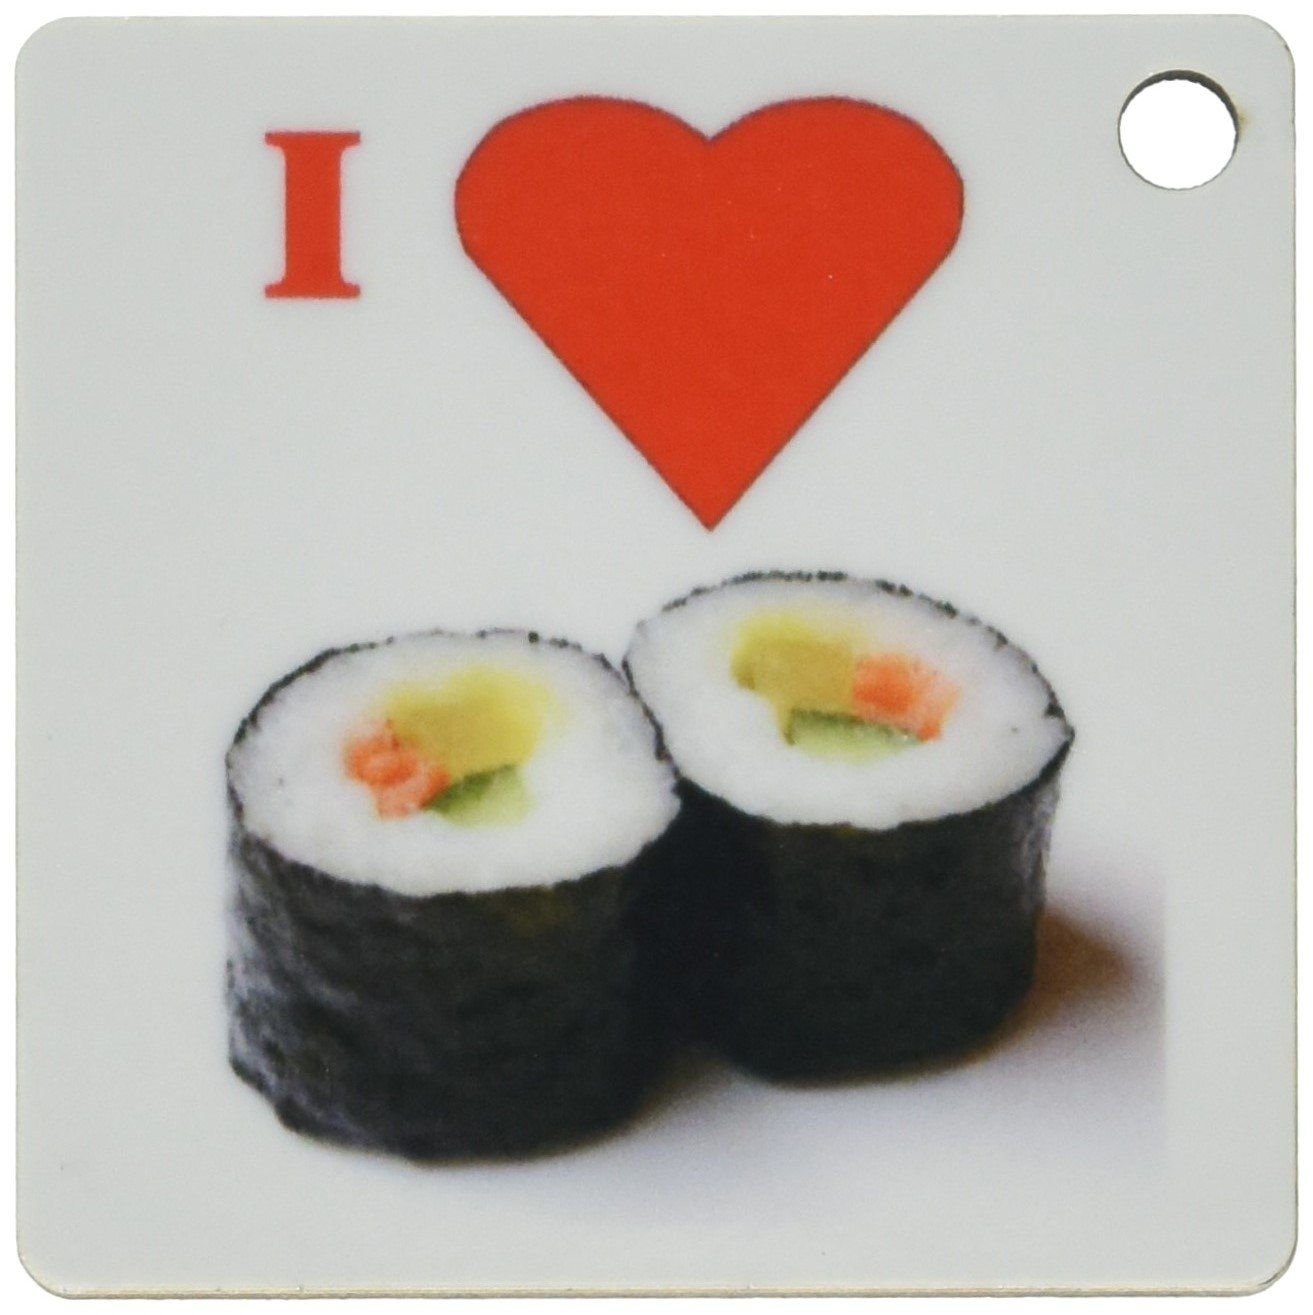 2c8fbbc0d 3dRose I love Sushi - Key Chains, 2.25 x 4.5 inches, set of 2 (kc_60718_1):  Amazon.in: Bags, Wallets & Luggage